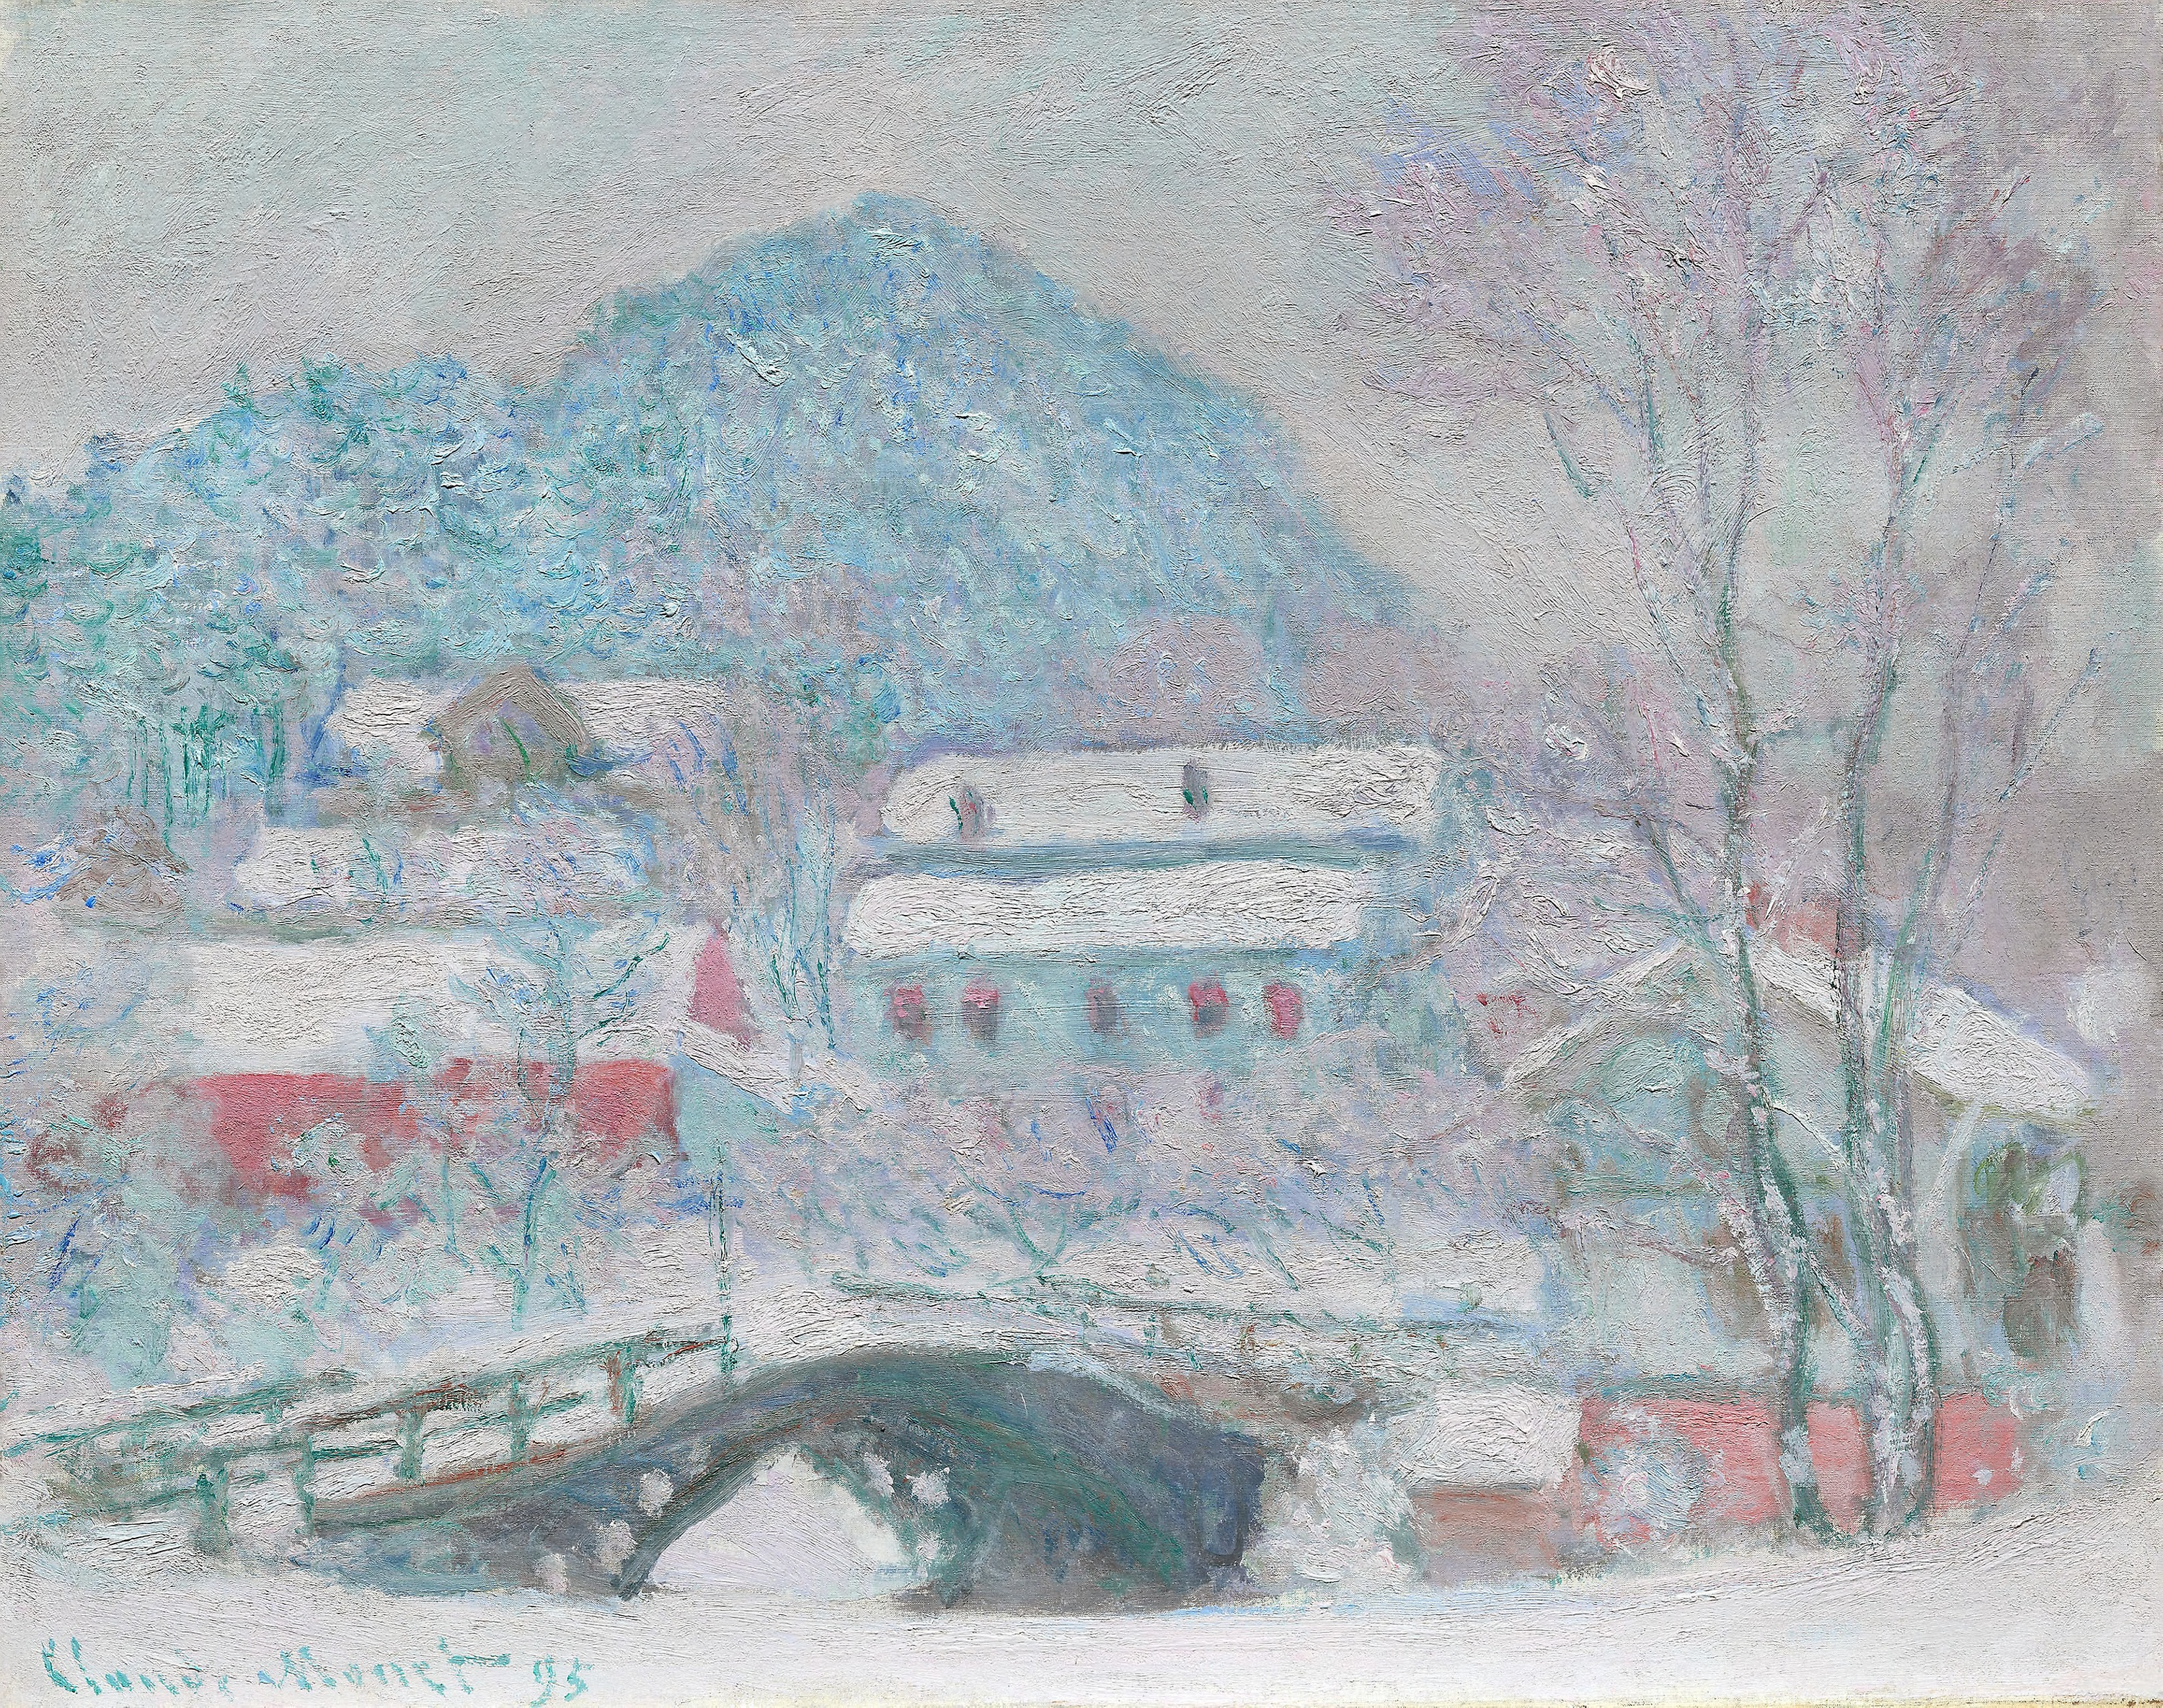 Løkke bro, Sandvika. Oil on canvas, 1895 by Claude Monet